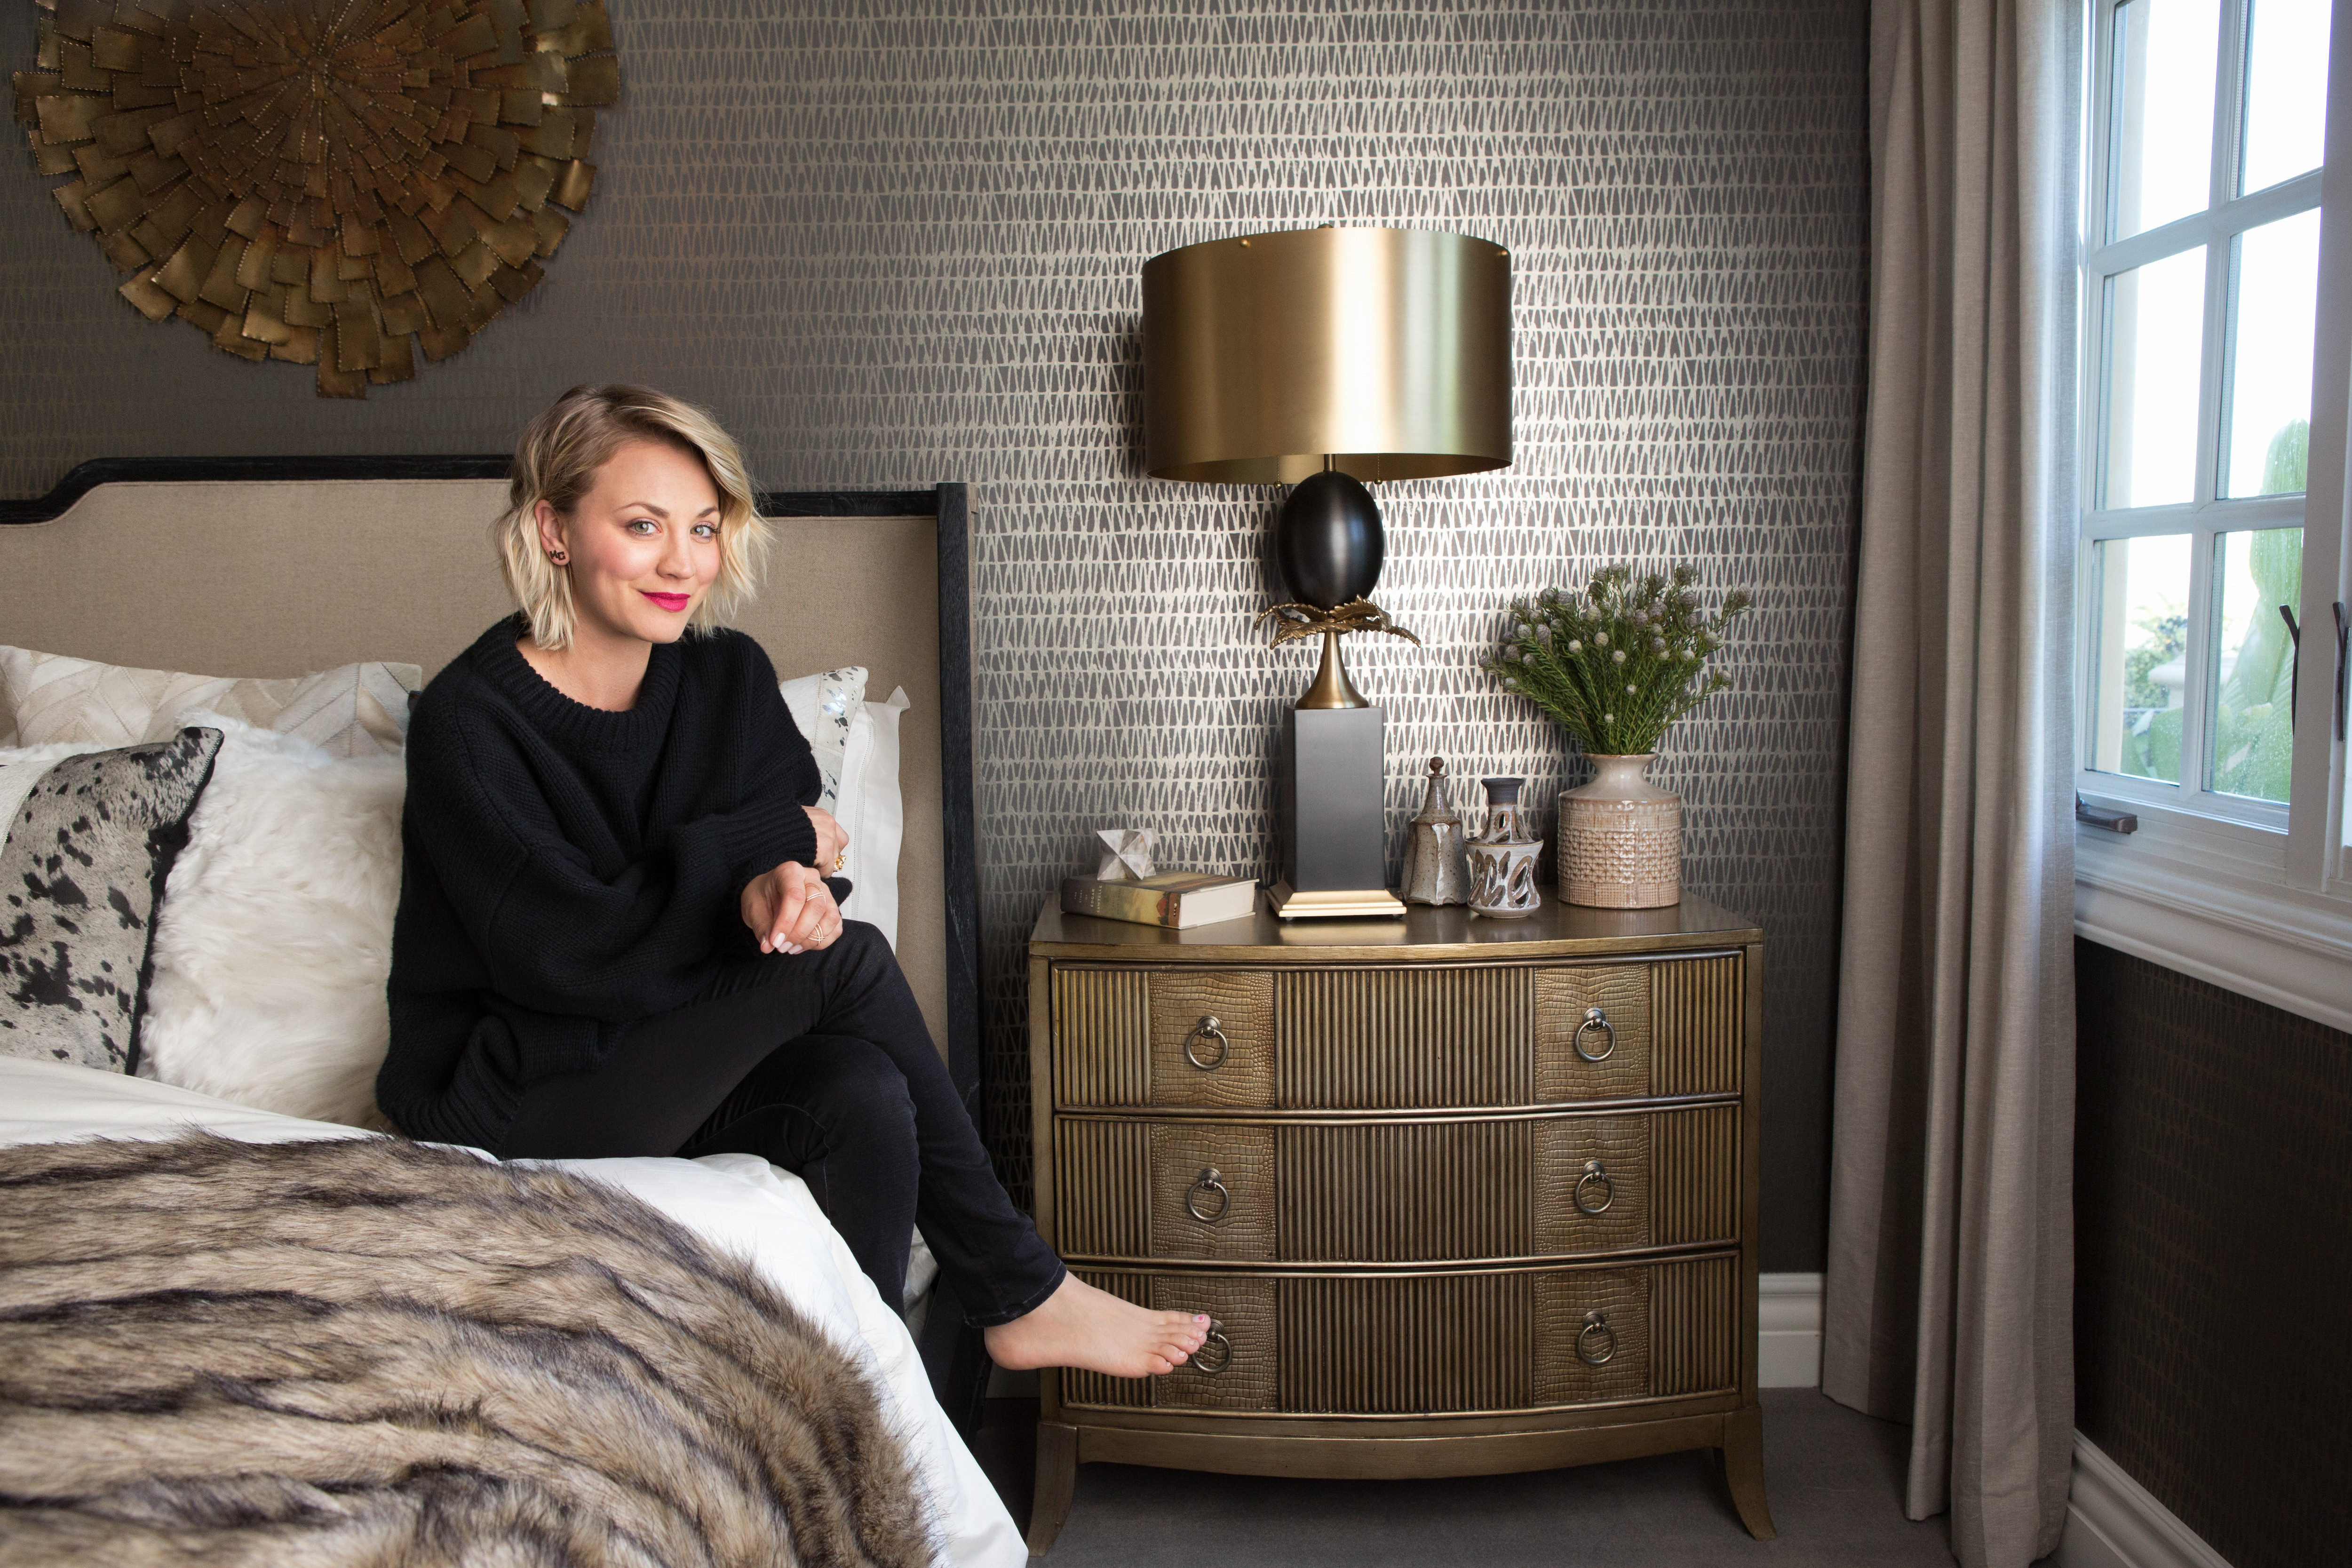 Big Bang Theory Star Kaley Cuoco Revamps Her Guest Room